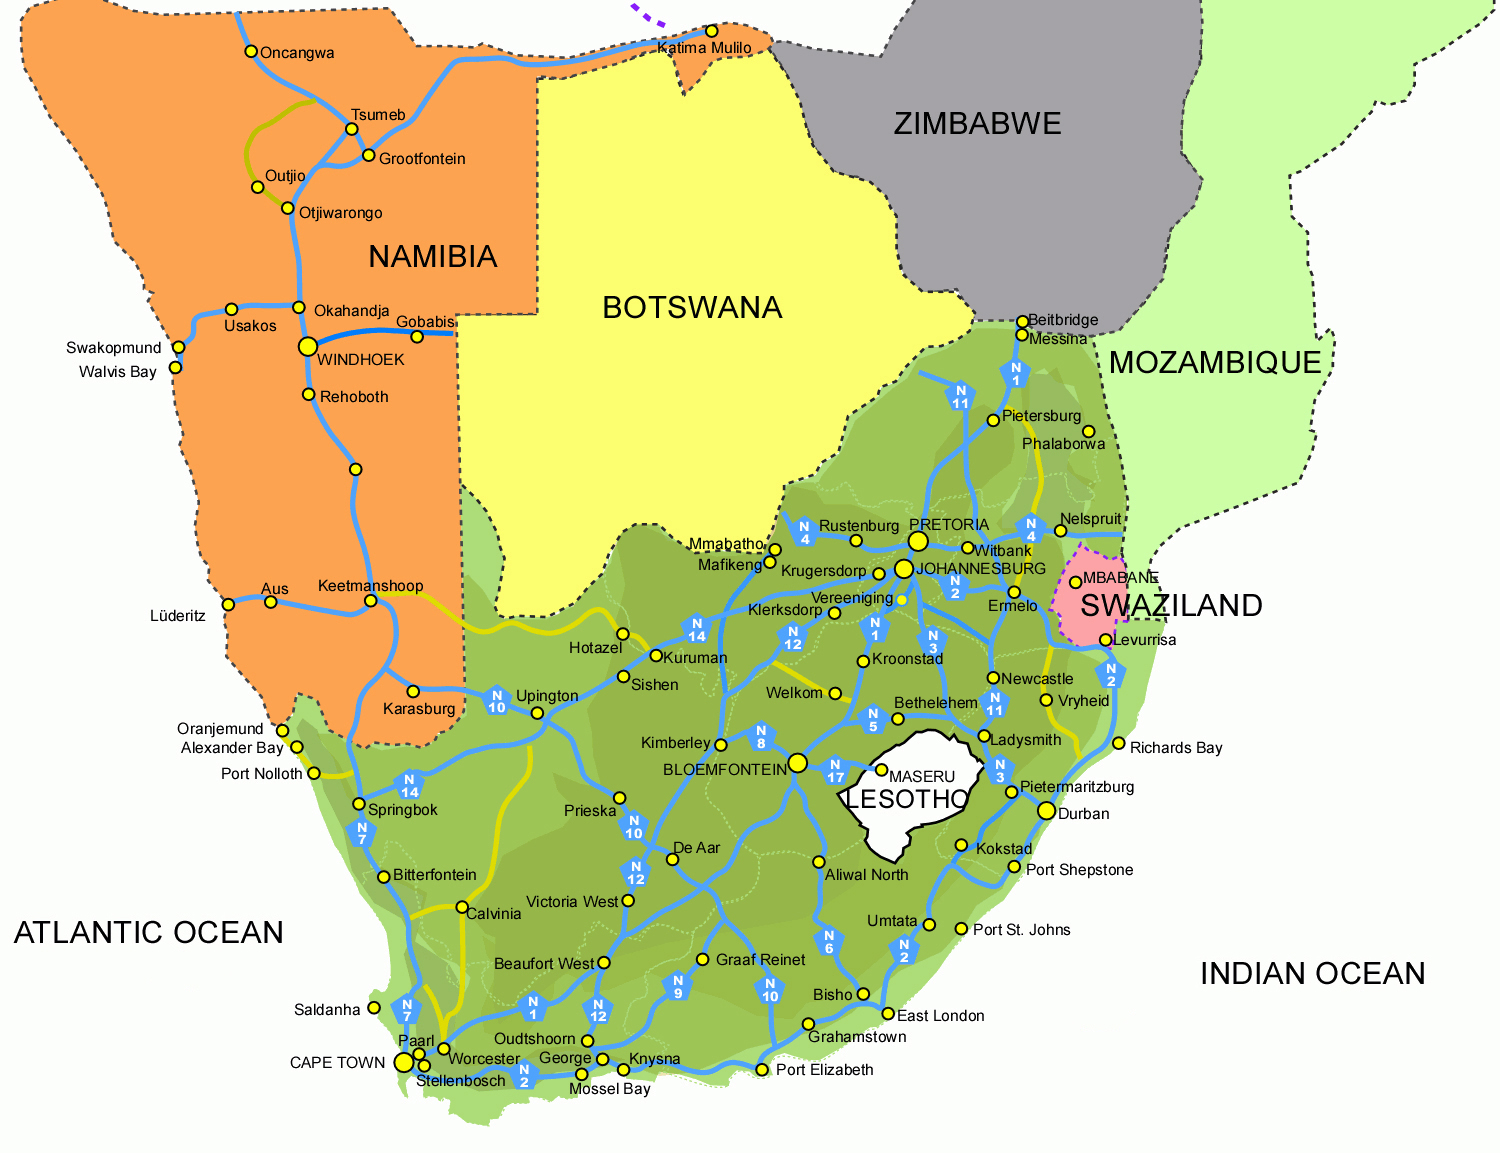 Detailed Highways Map Of South Africa South Africa Detailed - Lesotho maps with countries